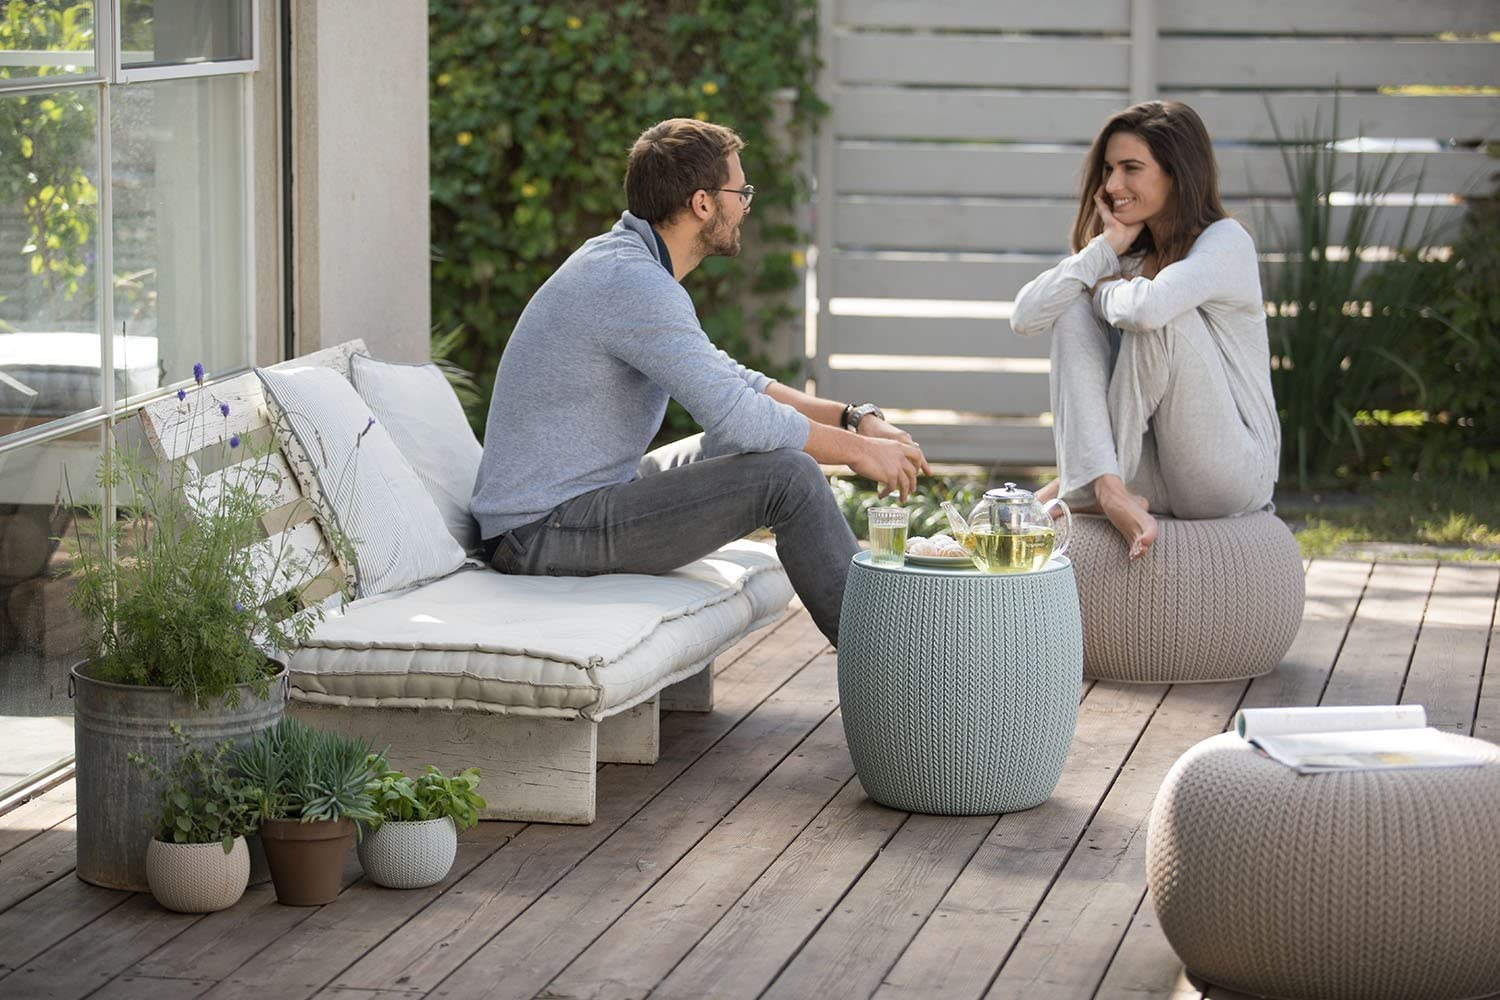 Keter-Urban-Knit-1 15 Unique Furniture Designs for Outdoor Small Spaces